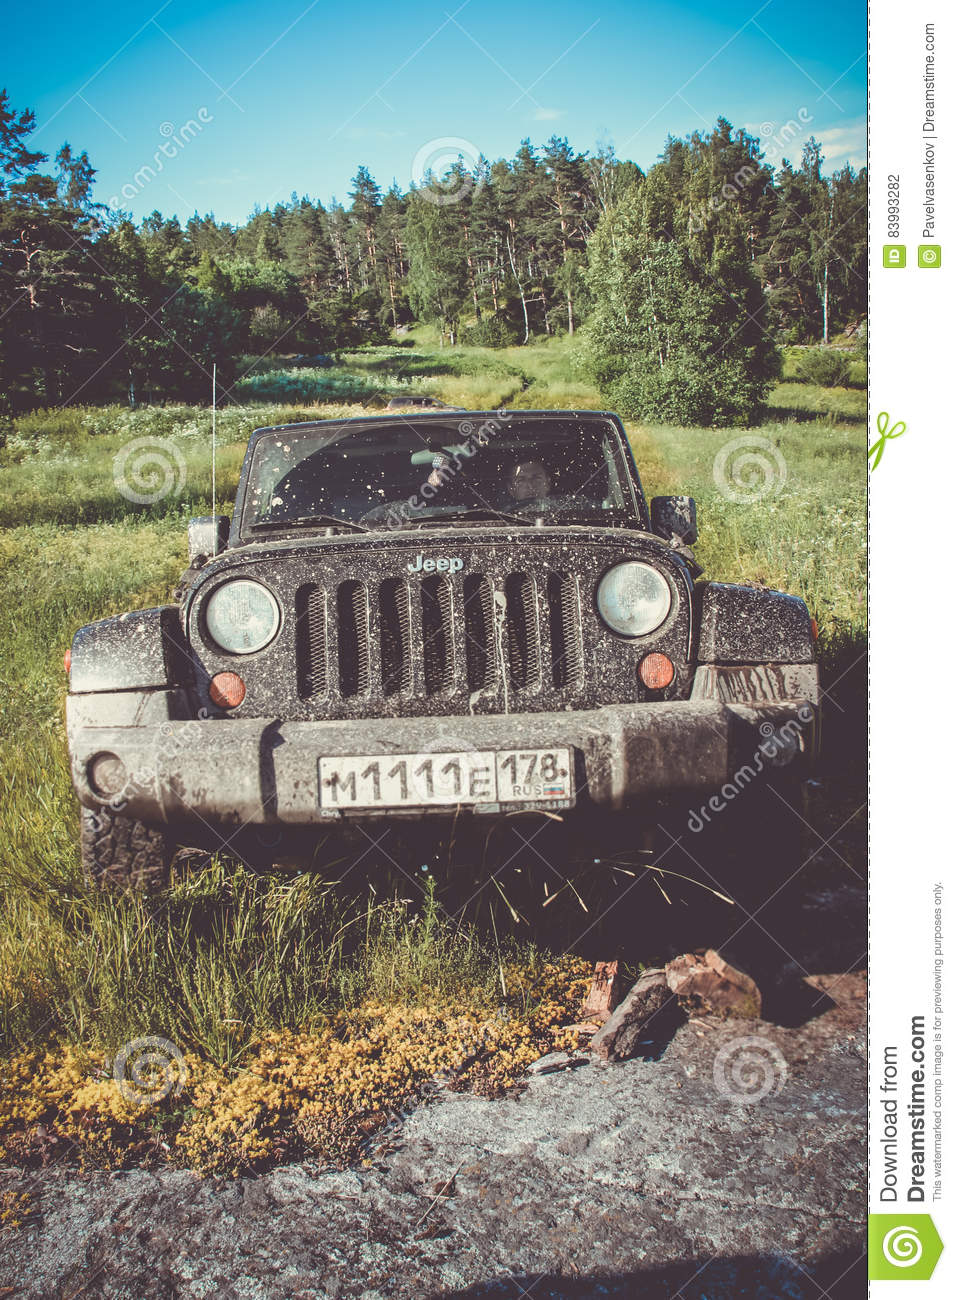 Jeep Wrangler Rubicon Editorial Photography Image Of Chrysler Expedition Leningrad Oblast Russia June 22 2016 Offroad By In The Region Is A Compact Four Wheel Drive Off